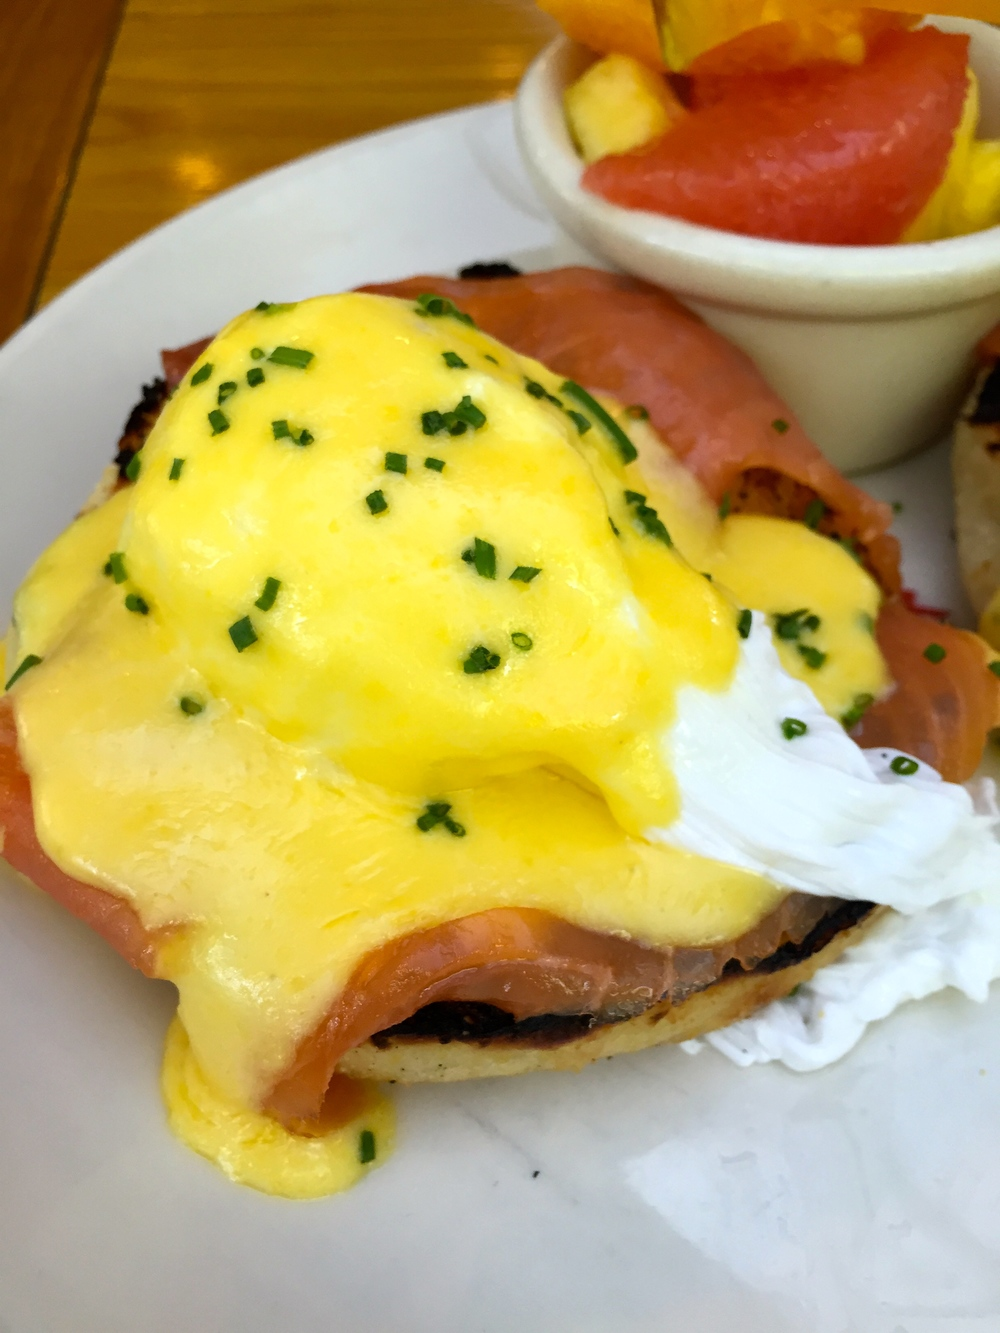 SMOKED SALMON BENEDICT poached eggs, hollandaise, english muffin, fruit.